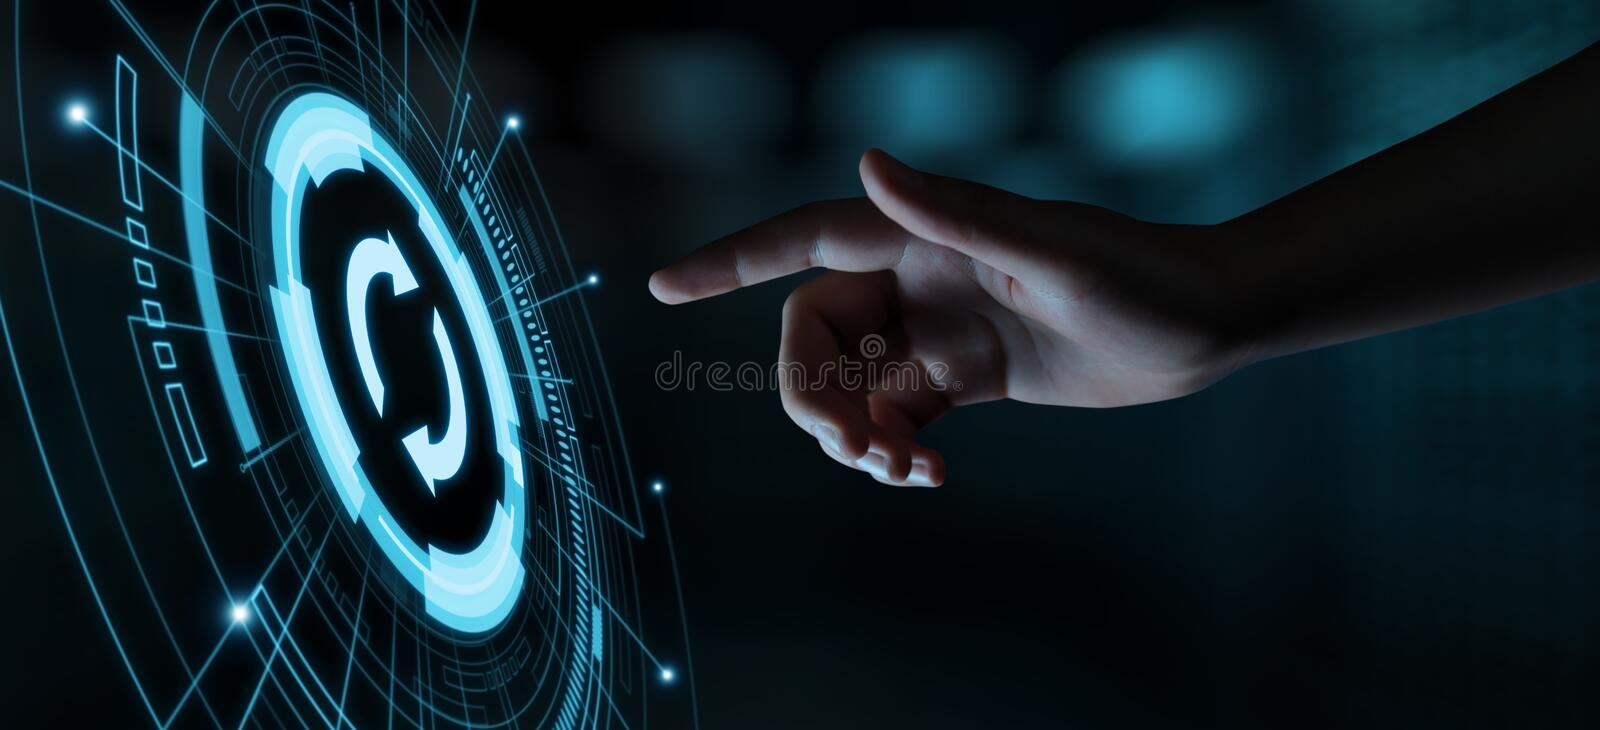 Update Software Computer Program Upgrade Business technology Internet Concept.  royalty free stock photo